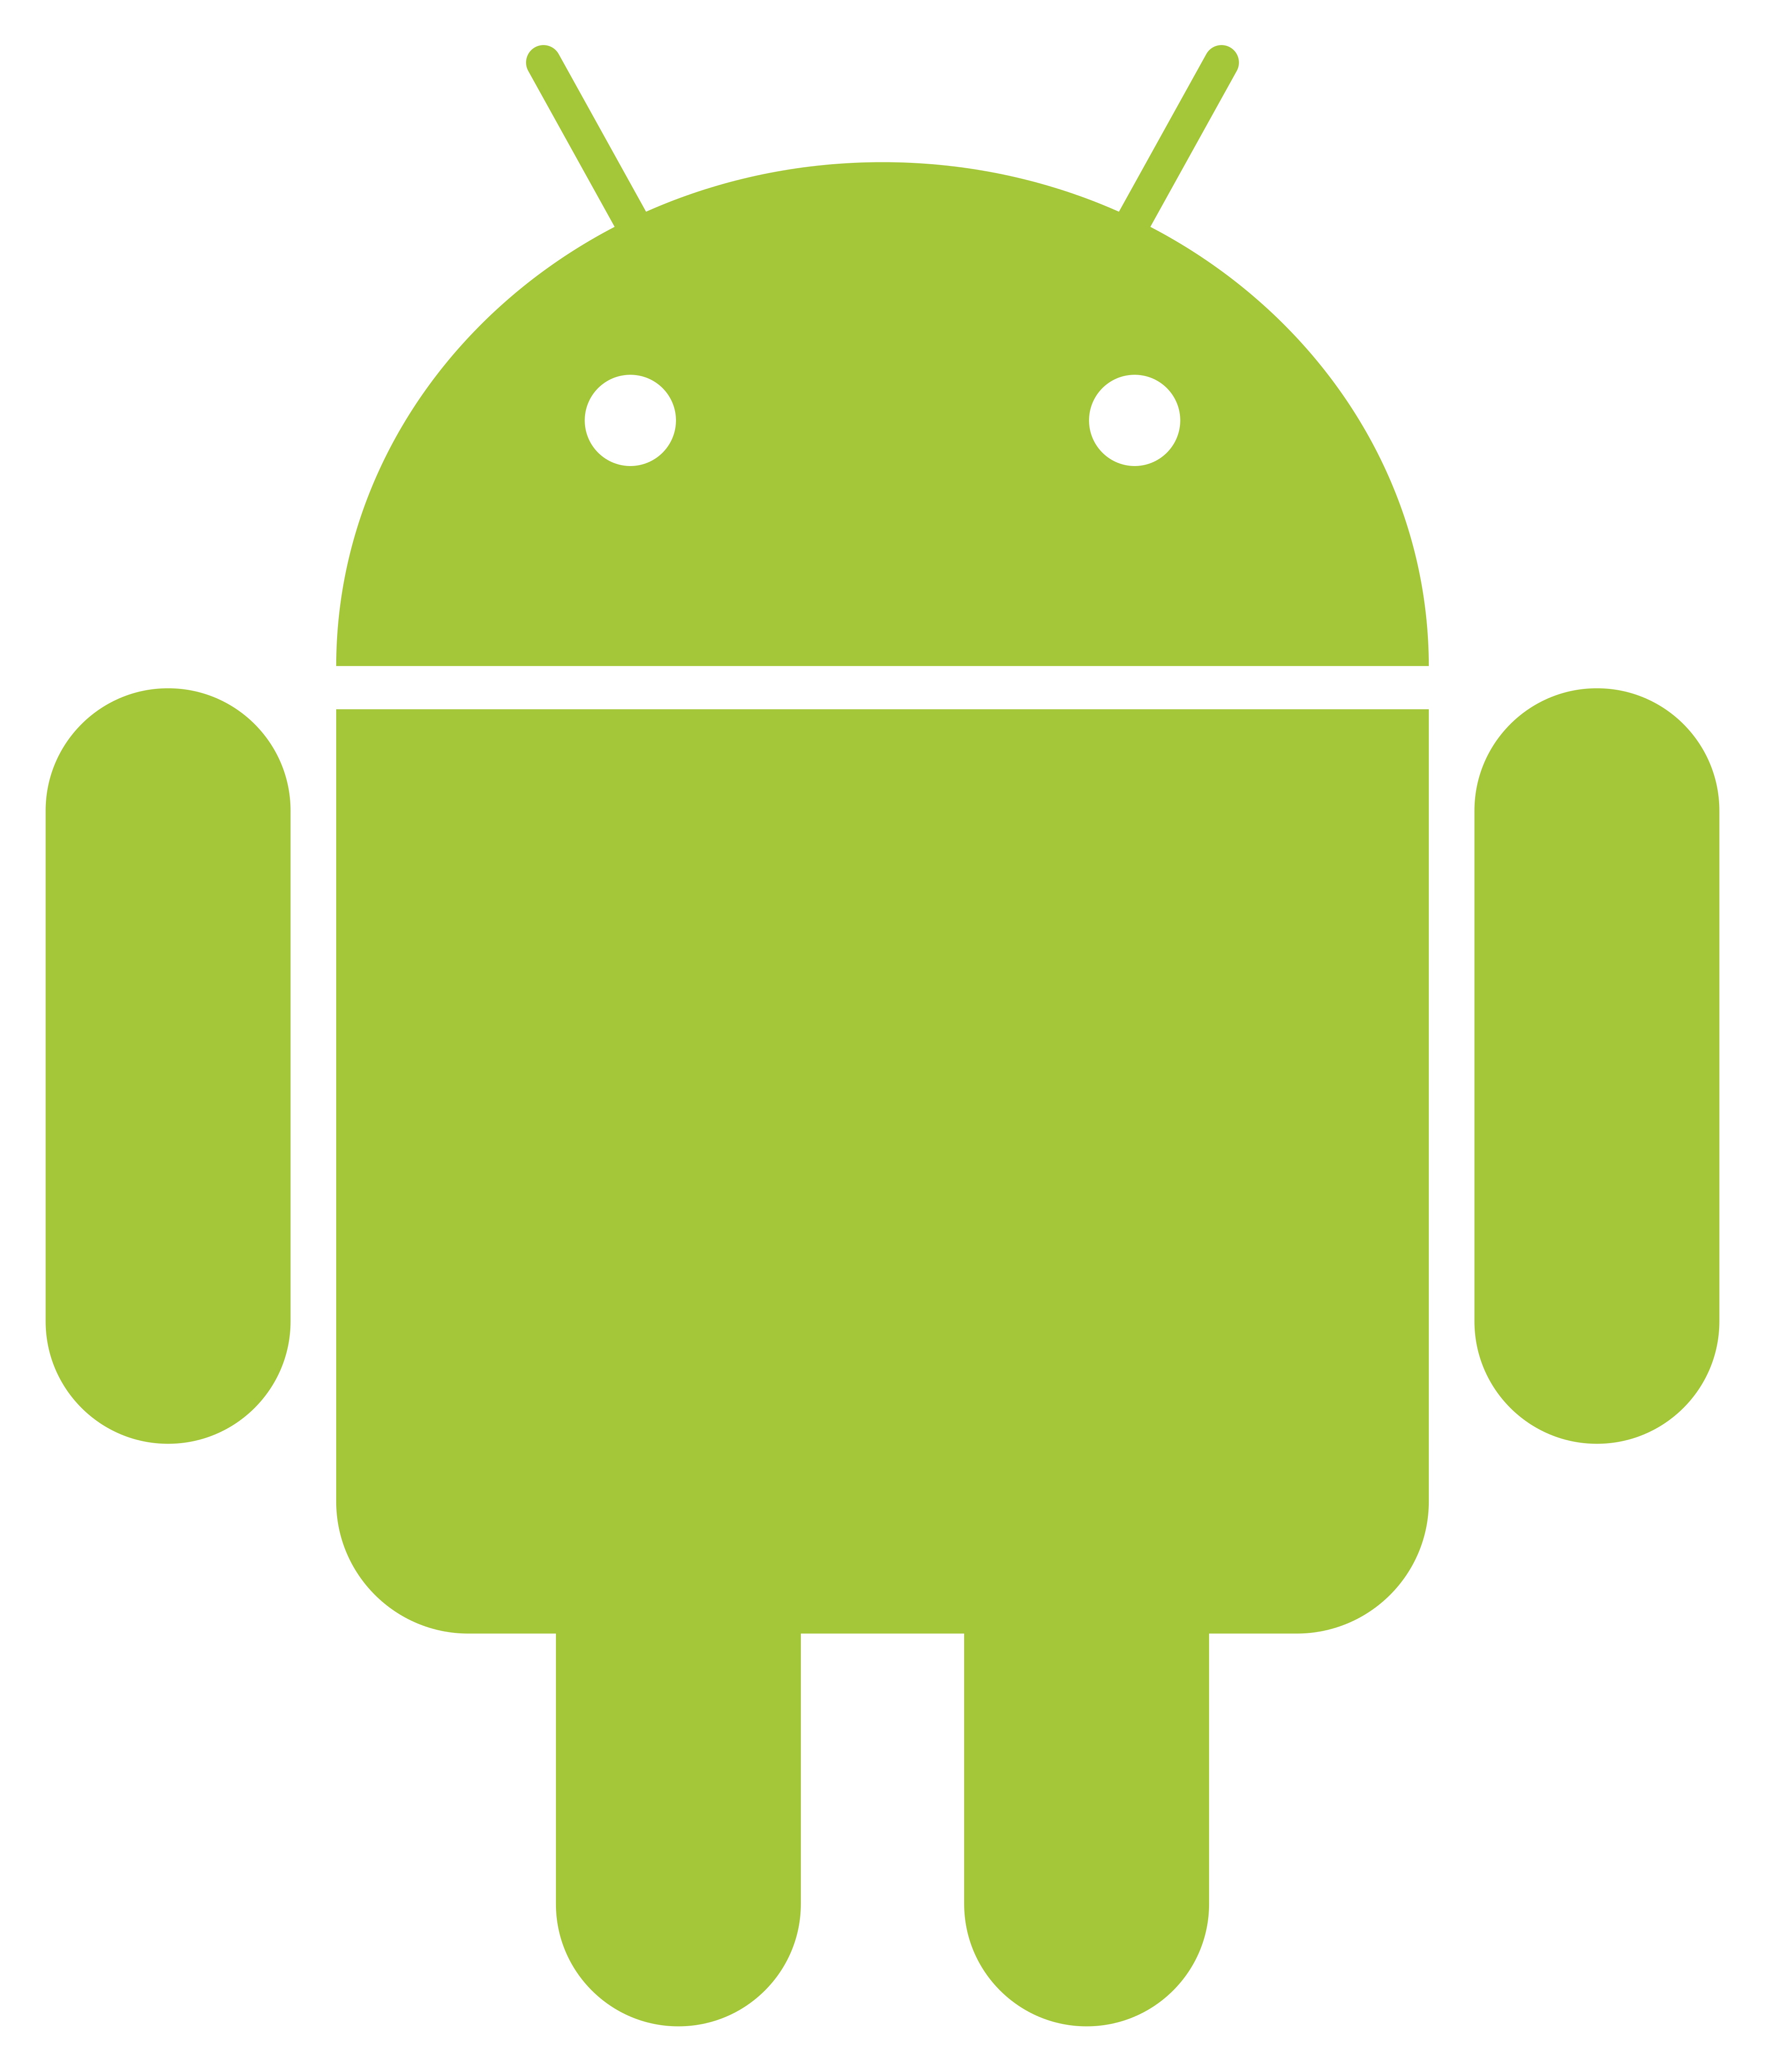 android logo 5 - Android Logo